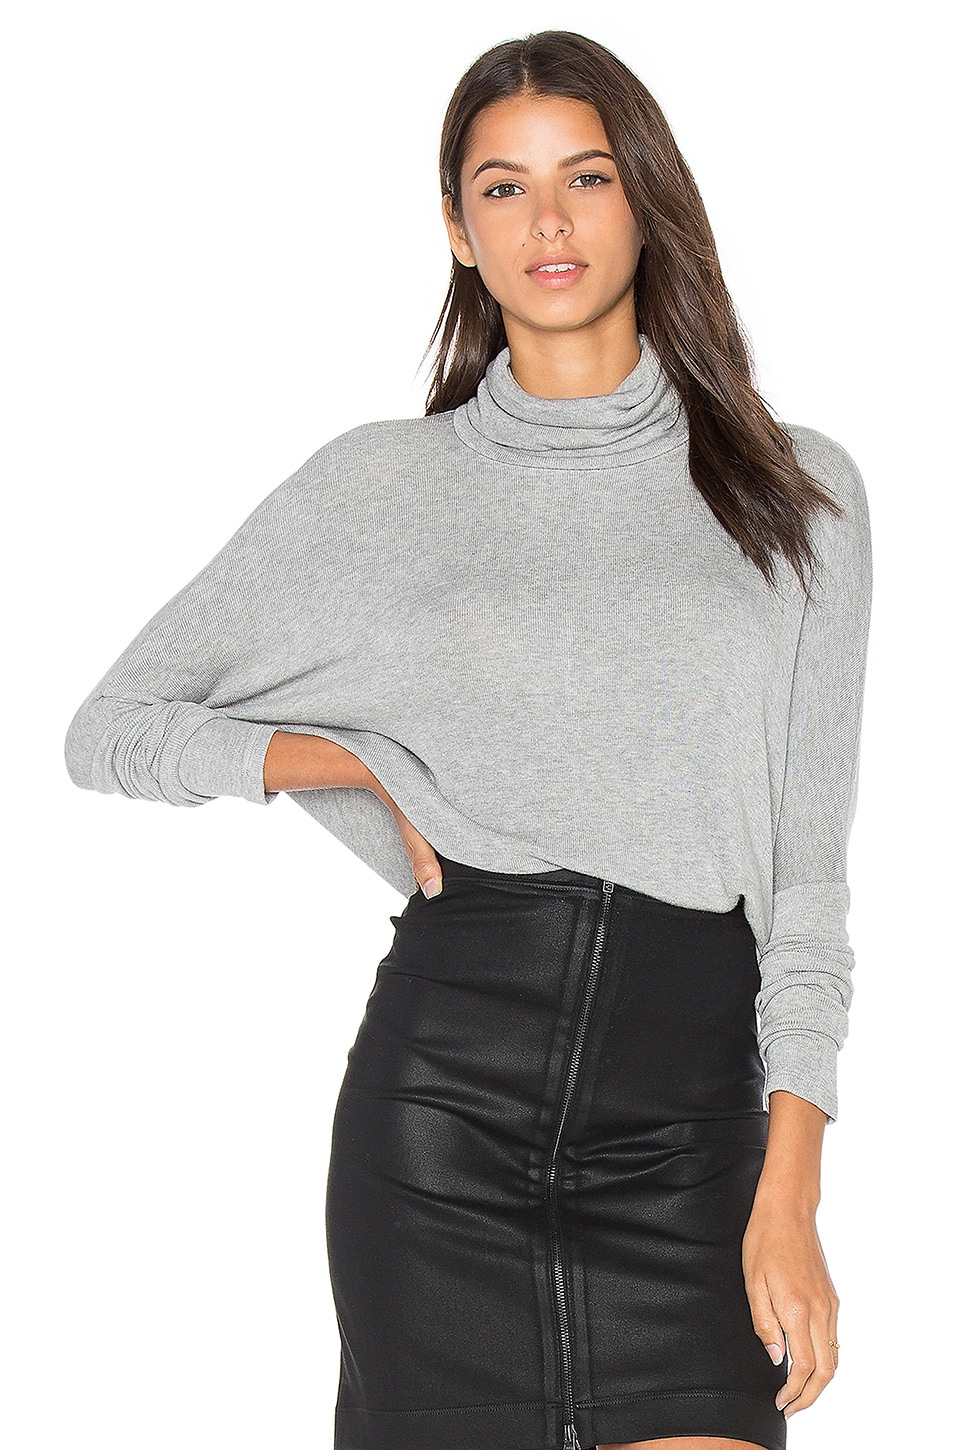 Draped Rib Long Sleeve Turtleneck Top by Bobi